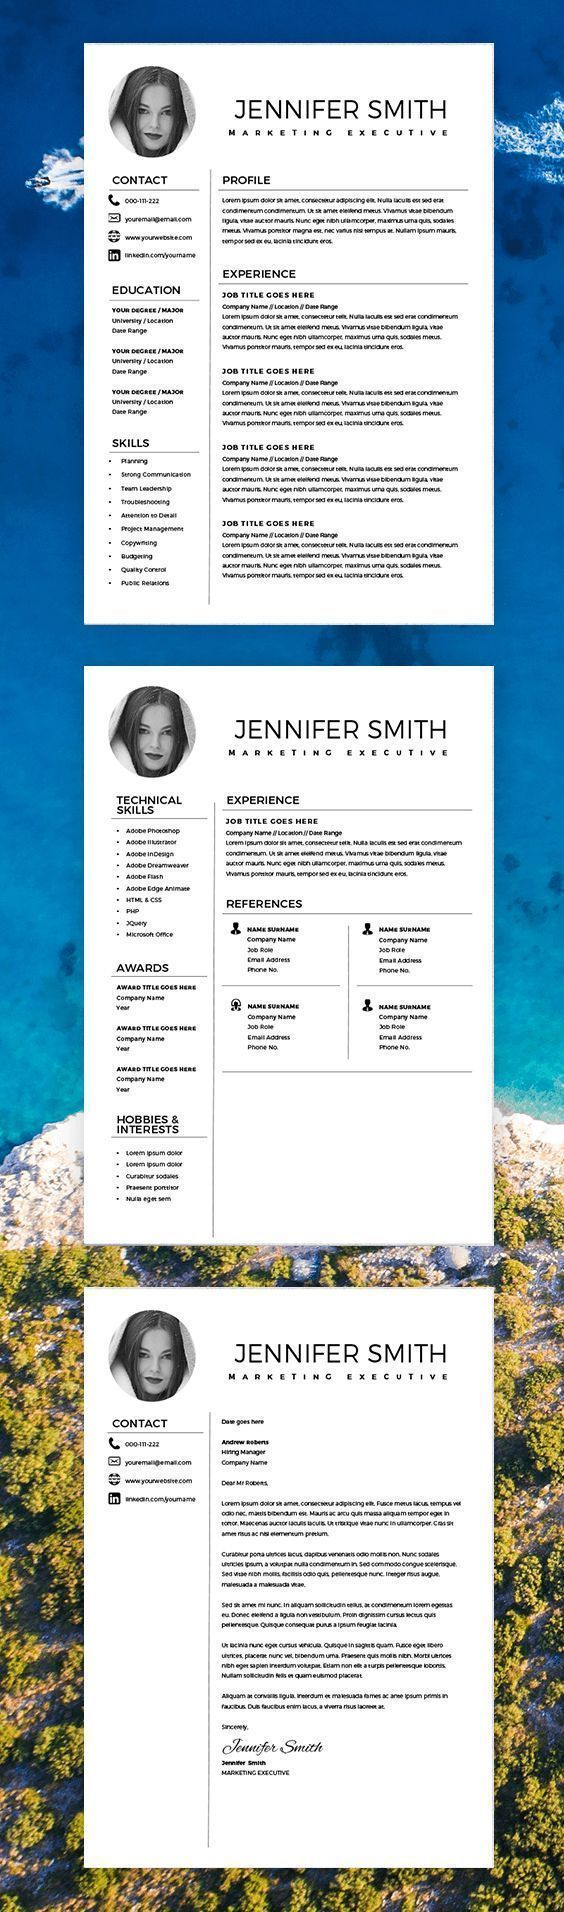 resume template marketing resume template word creative resume with photo free cover letter